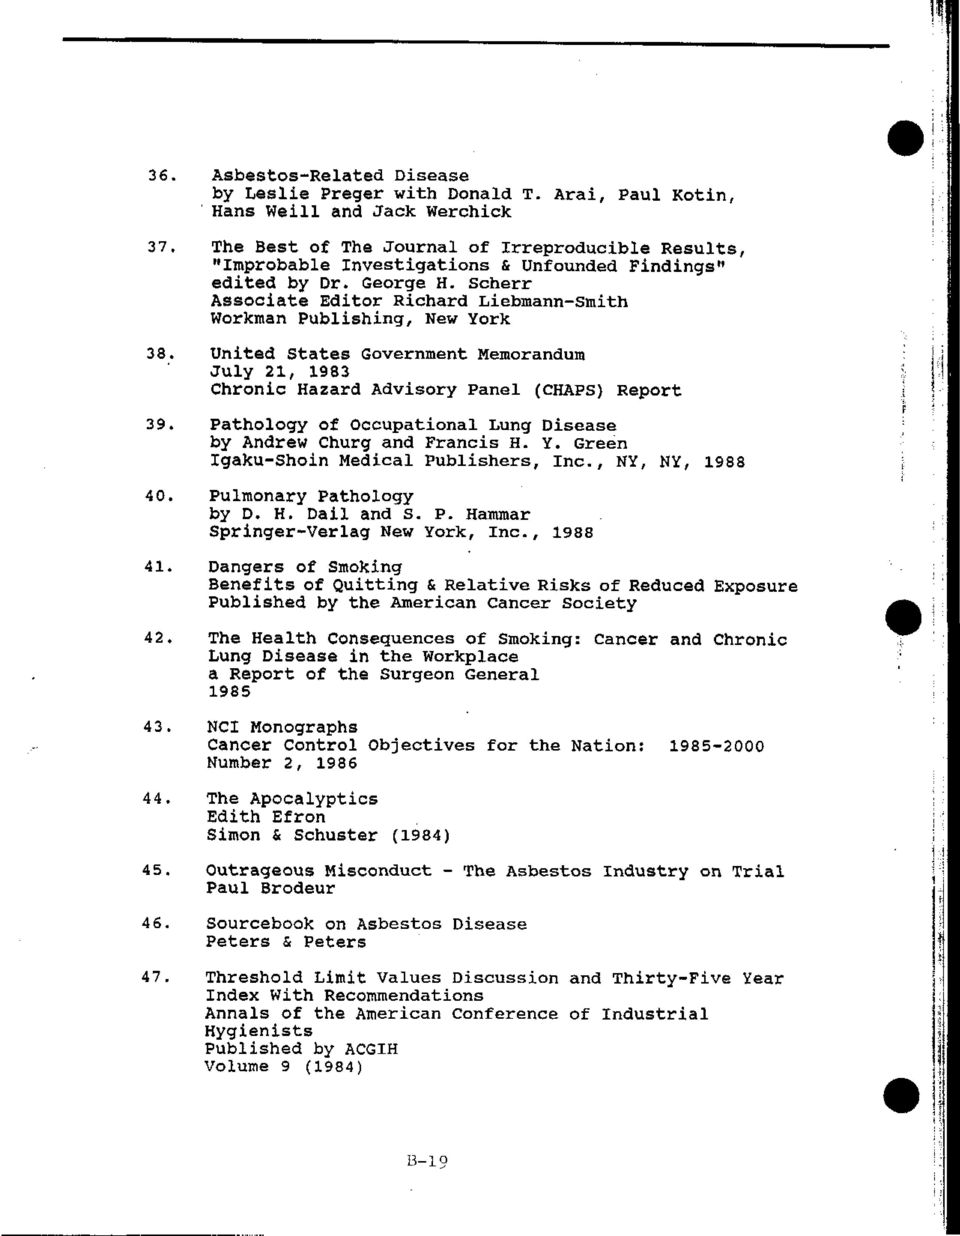 Scherr Associate Editor Richard Liebmann-Smith Workman Publishing, New York 38. United States Government Memorandum July 21, 1983 Chronic Hazard Advisory Panel (CHAPS) Report 39.